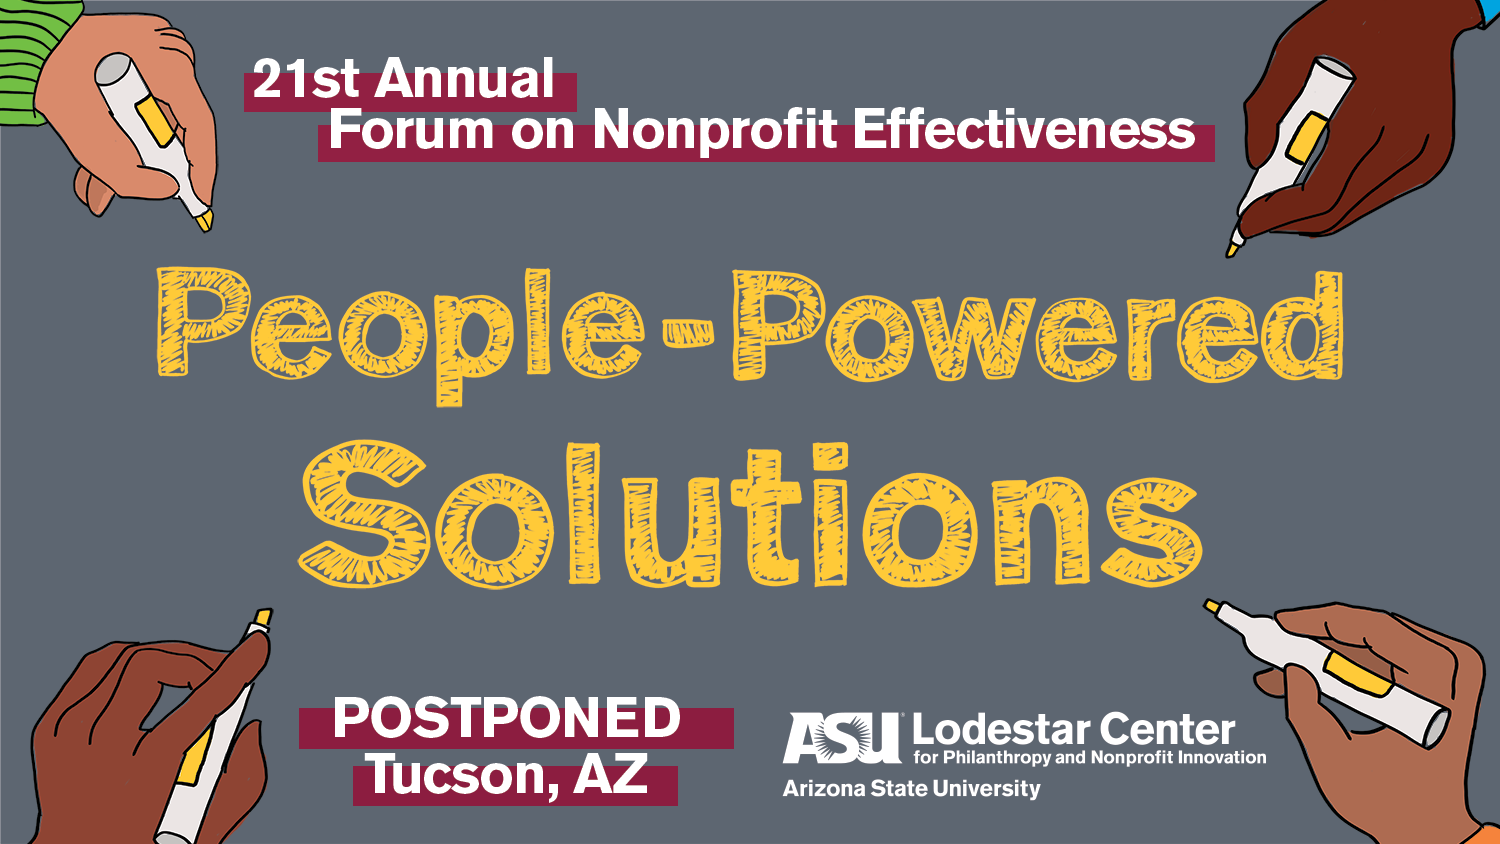 Tucson forum postponed